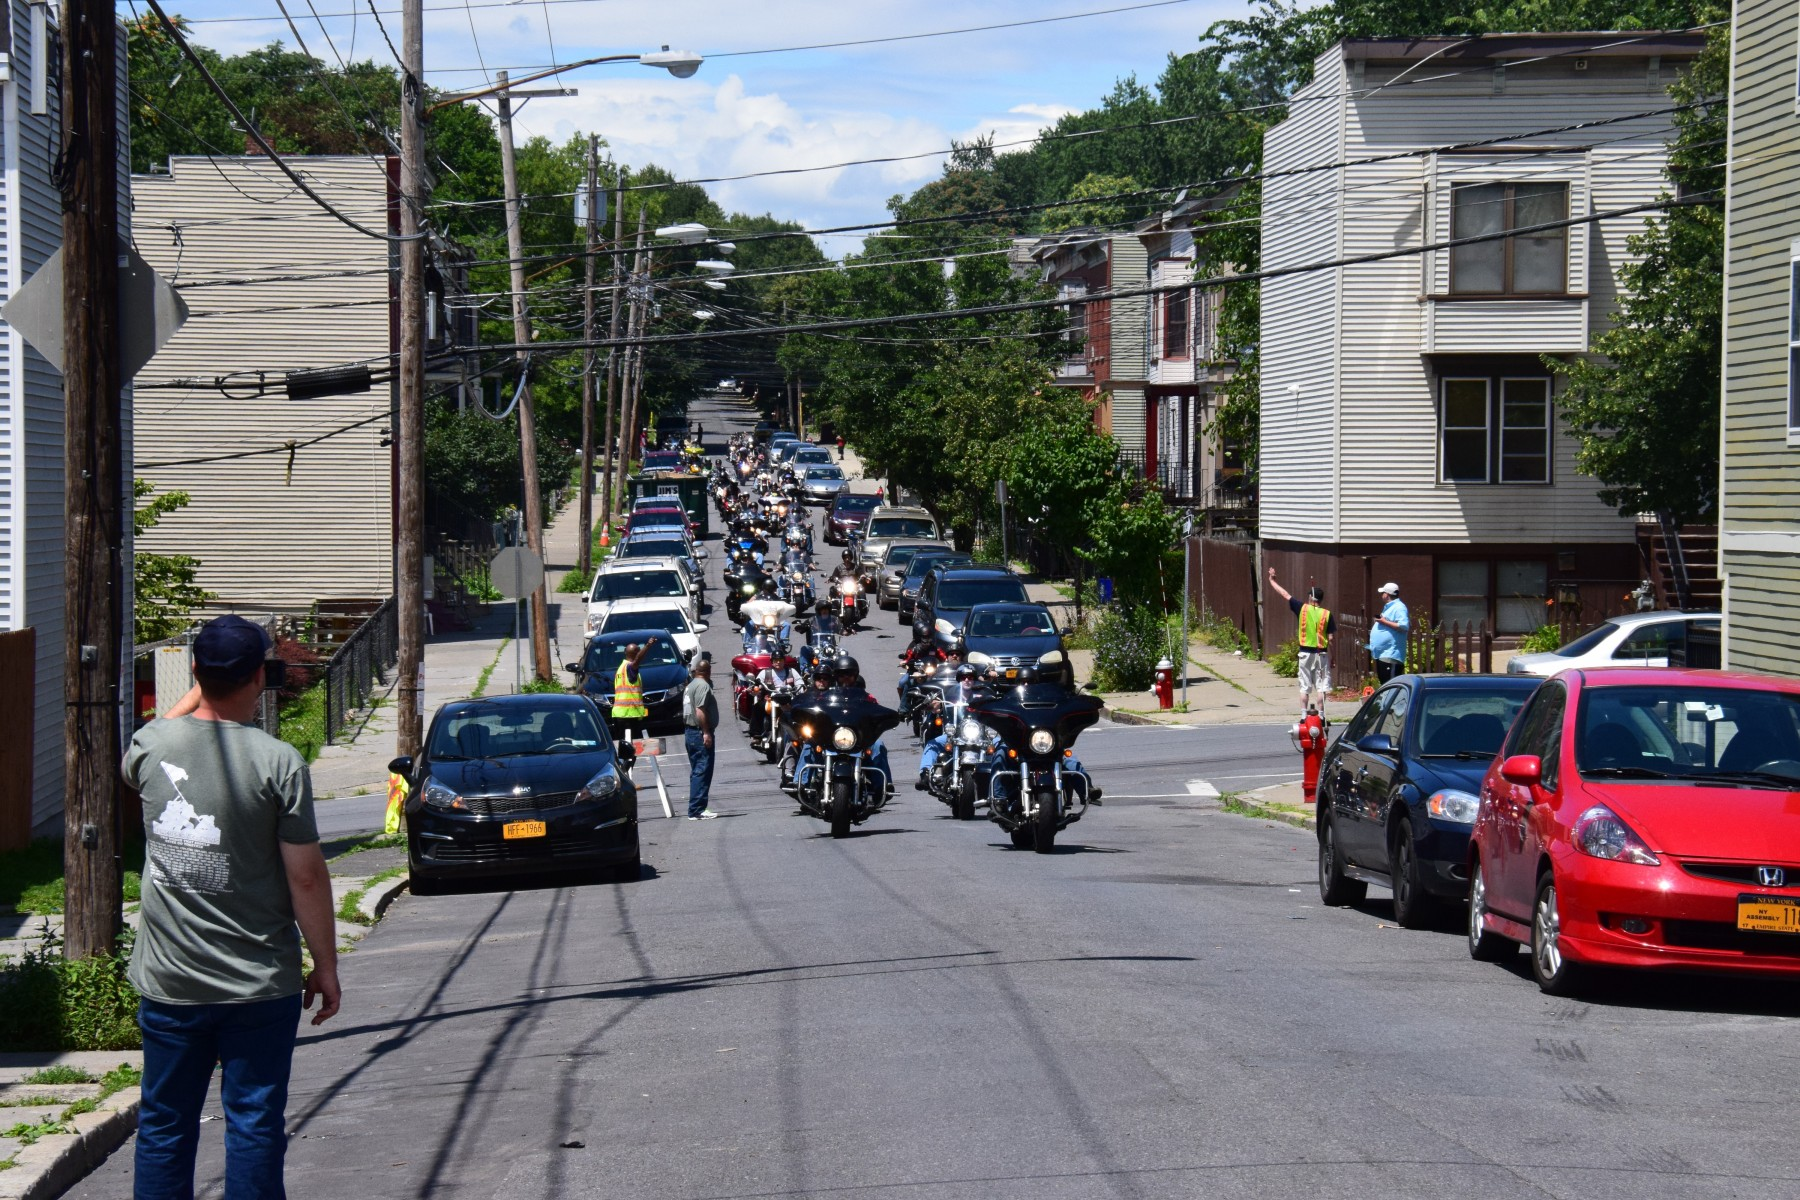 100 motorcyclists escorted a white, cargo van down an Albany, street.